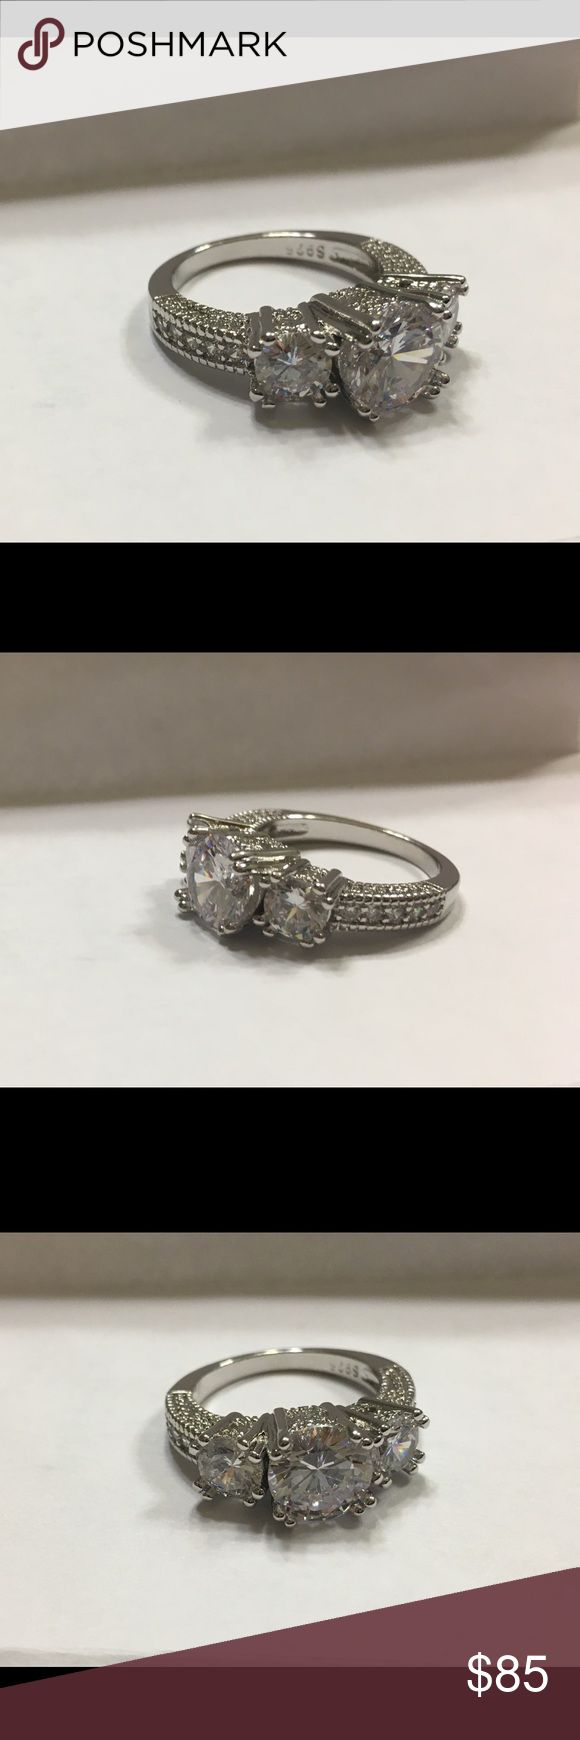 Engagement ring Austrian Crystal engagement ring in size 6 Sterling silver setting Jewelry Rings